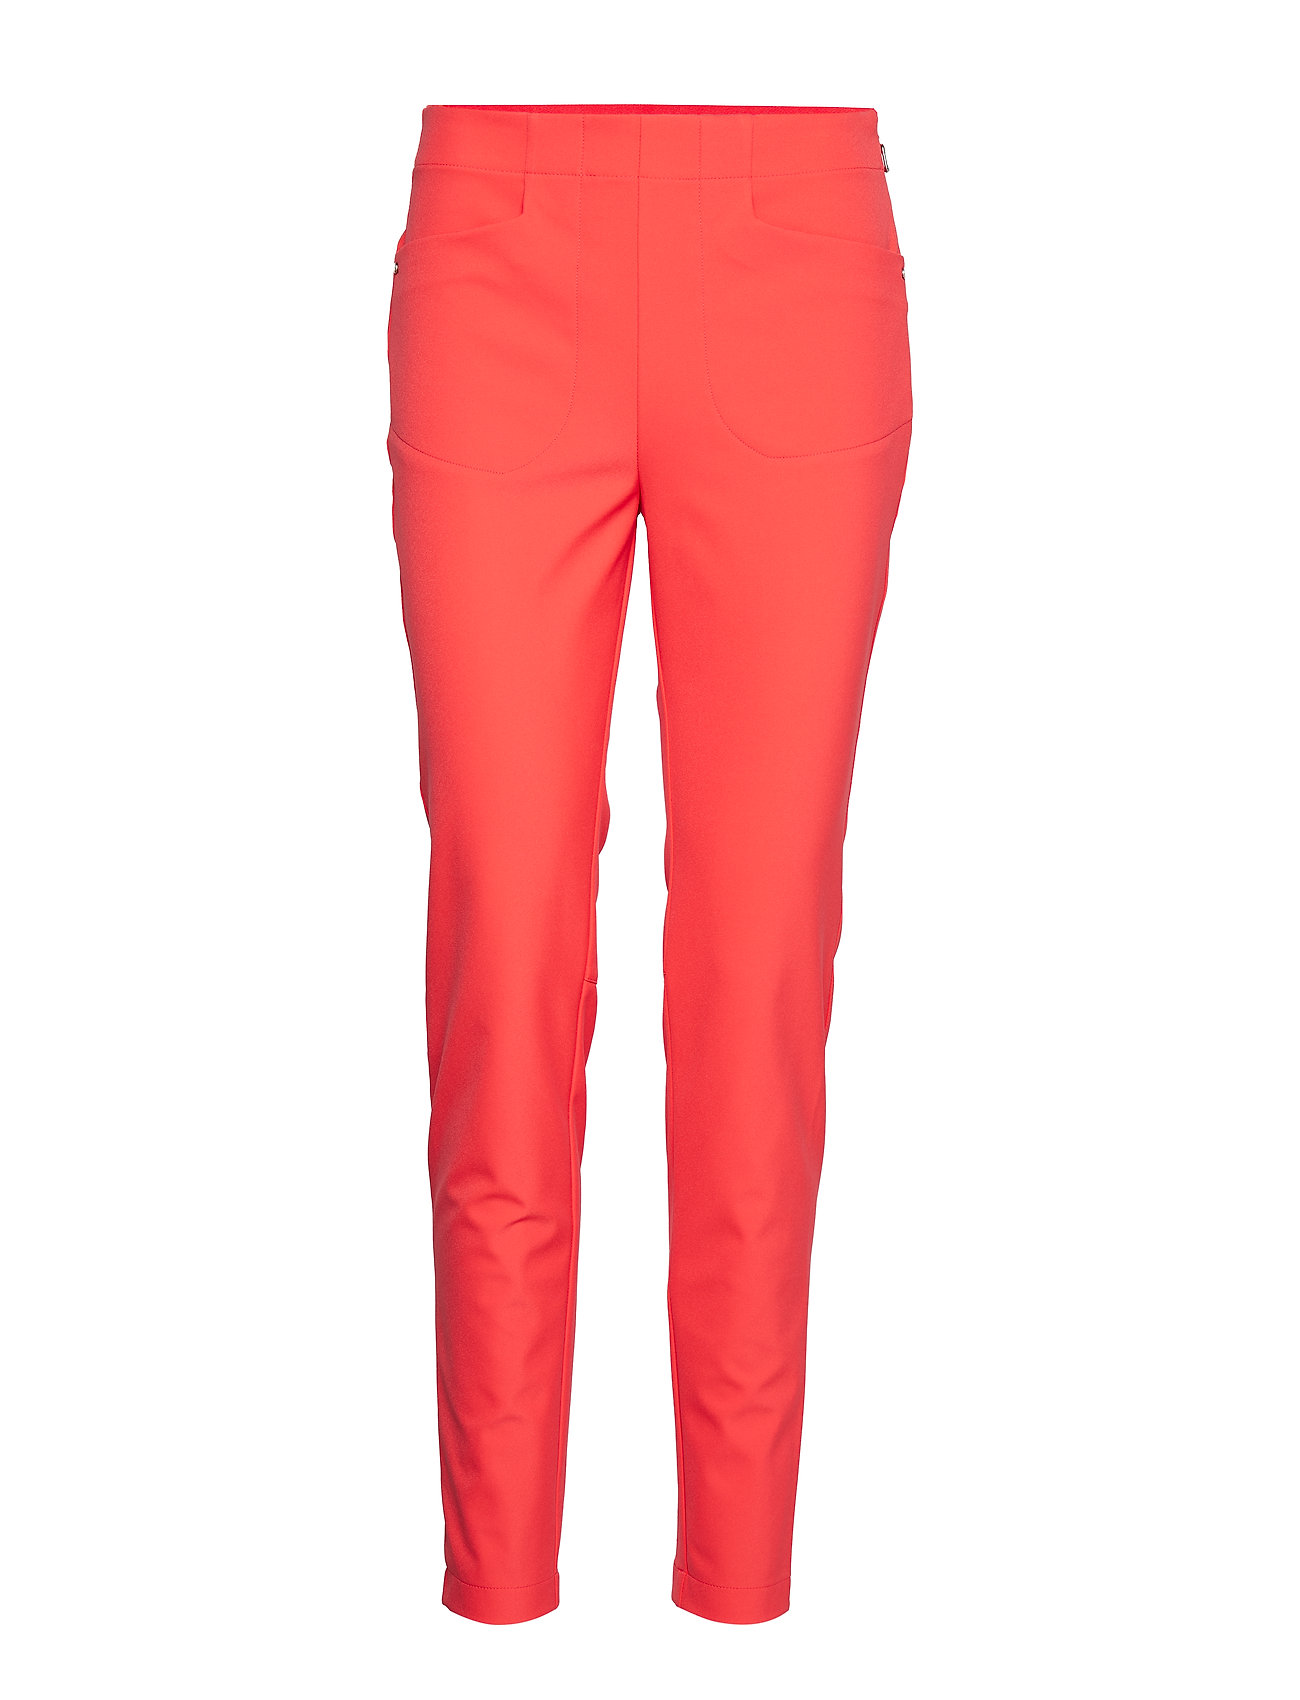 Ralph Lauren Golf Stretch Athletic Golf Pant - RACING RED